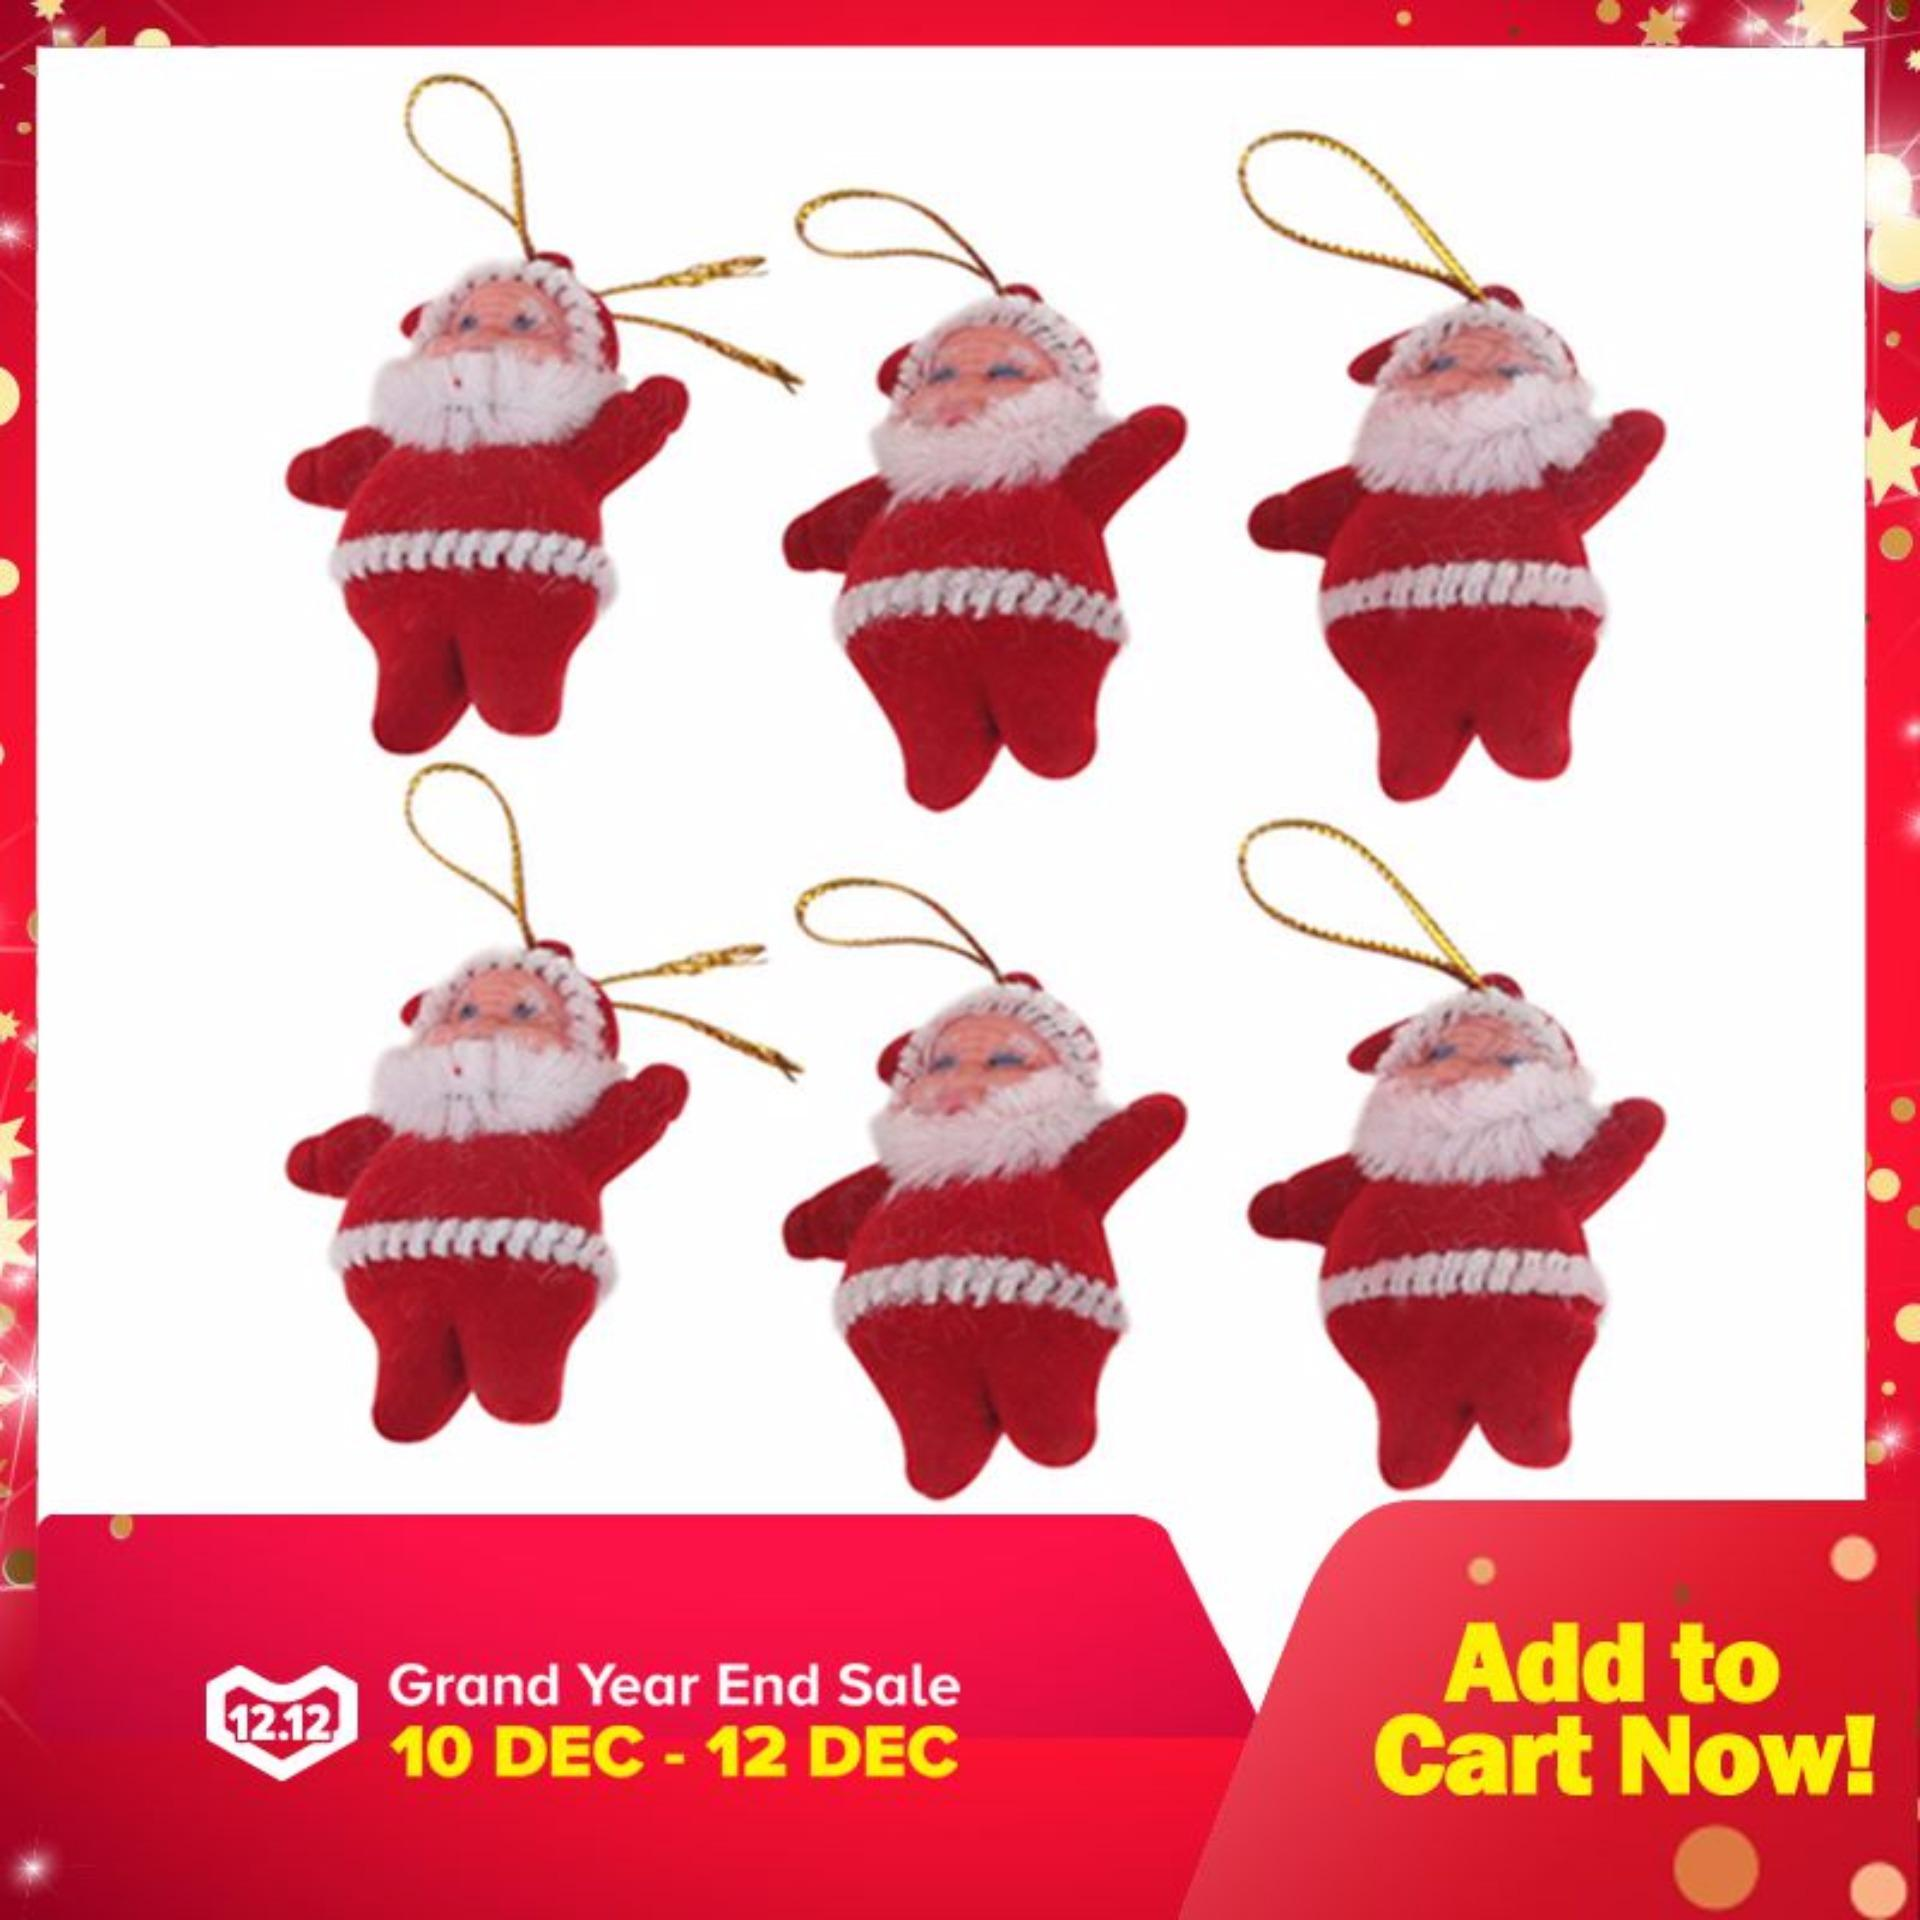 6pcs Christmas Santa Claus Ornaments Festival Party Xmas Tree Hanging Decoration Red By Miss Lan.